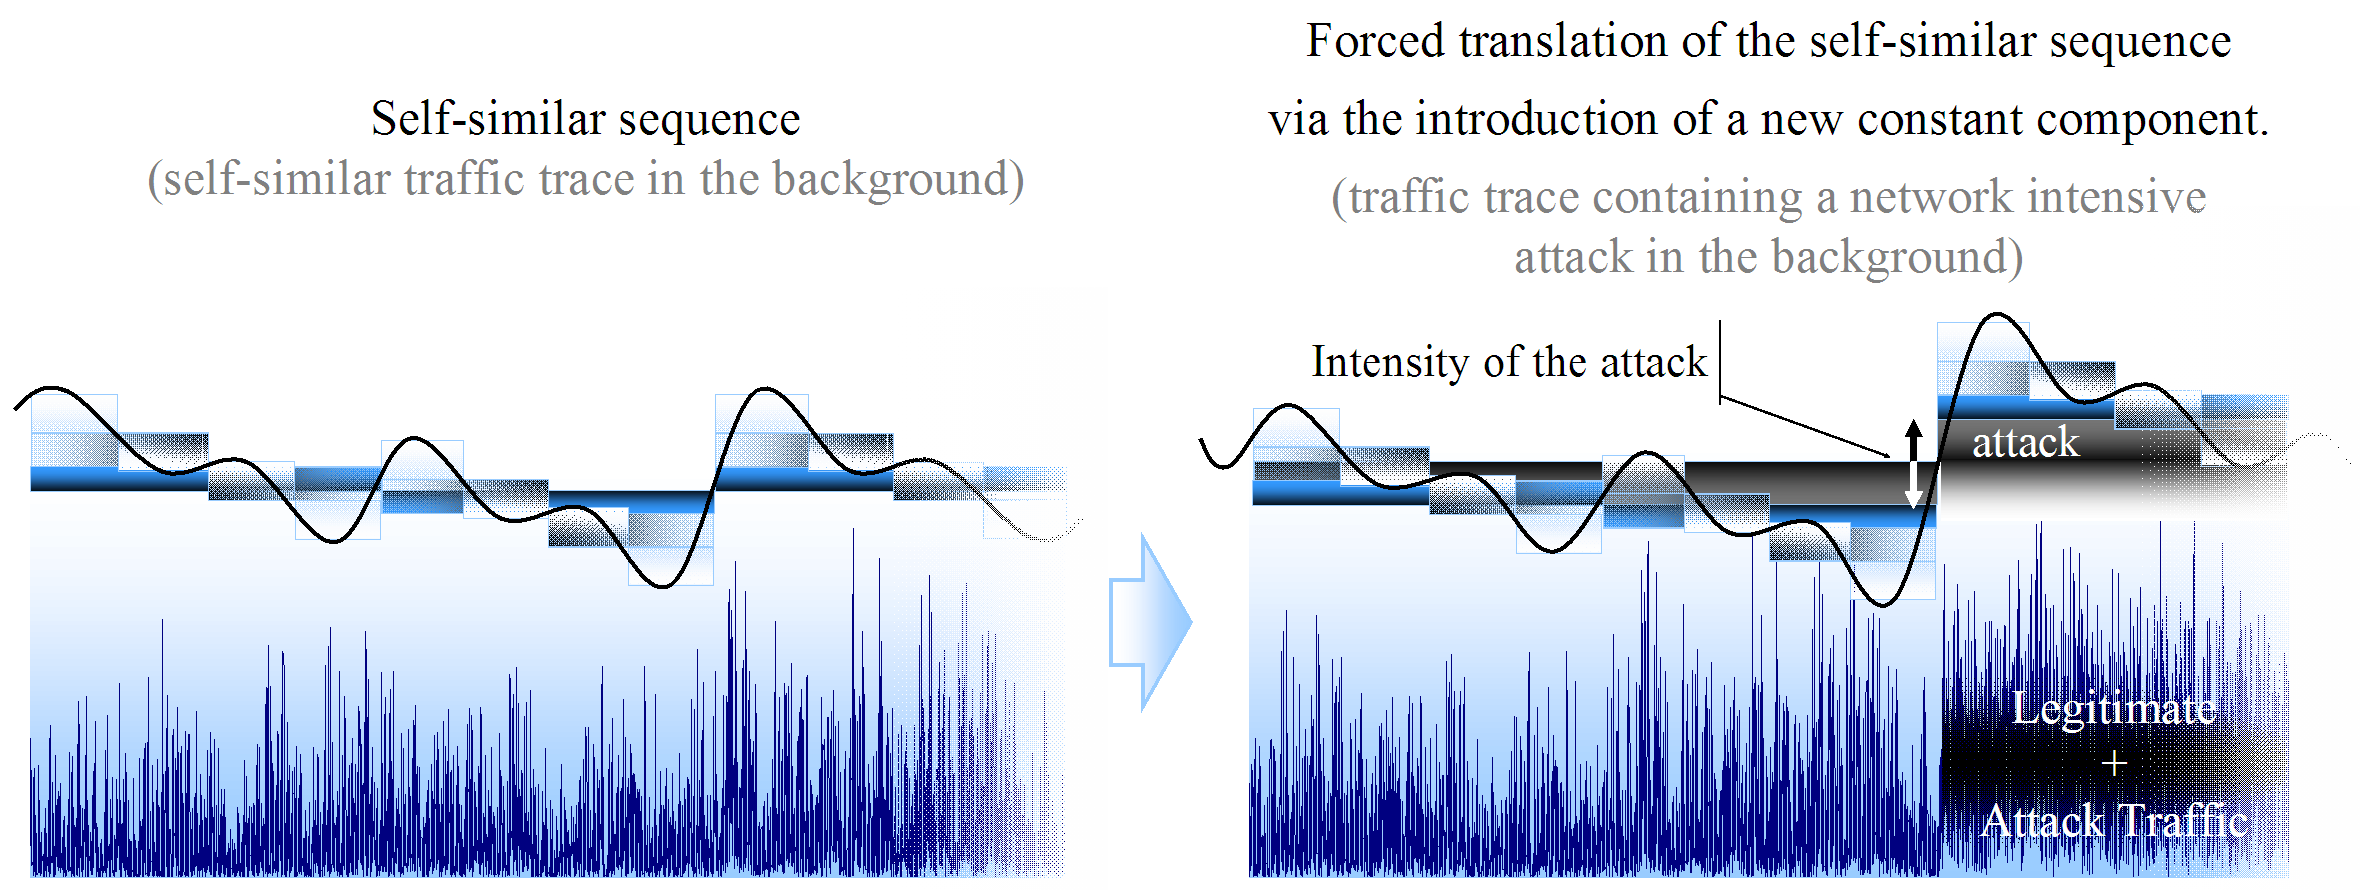 Figure 5.16: Illustration of the effect of summing a constant component to part of a self-similar signal. Analogy with the anomalous situation that may induce such effect in the network traffic trace.